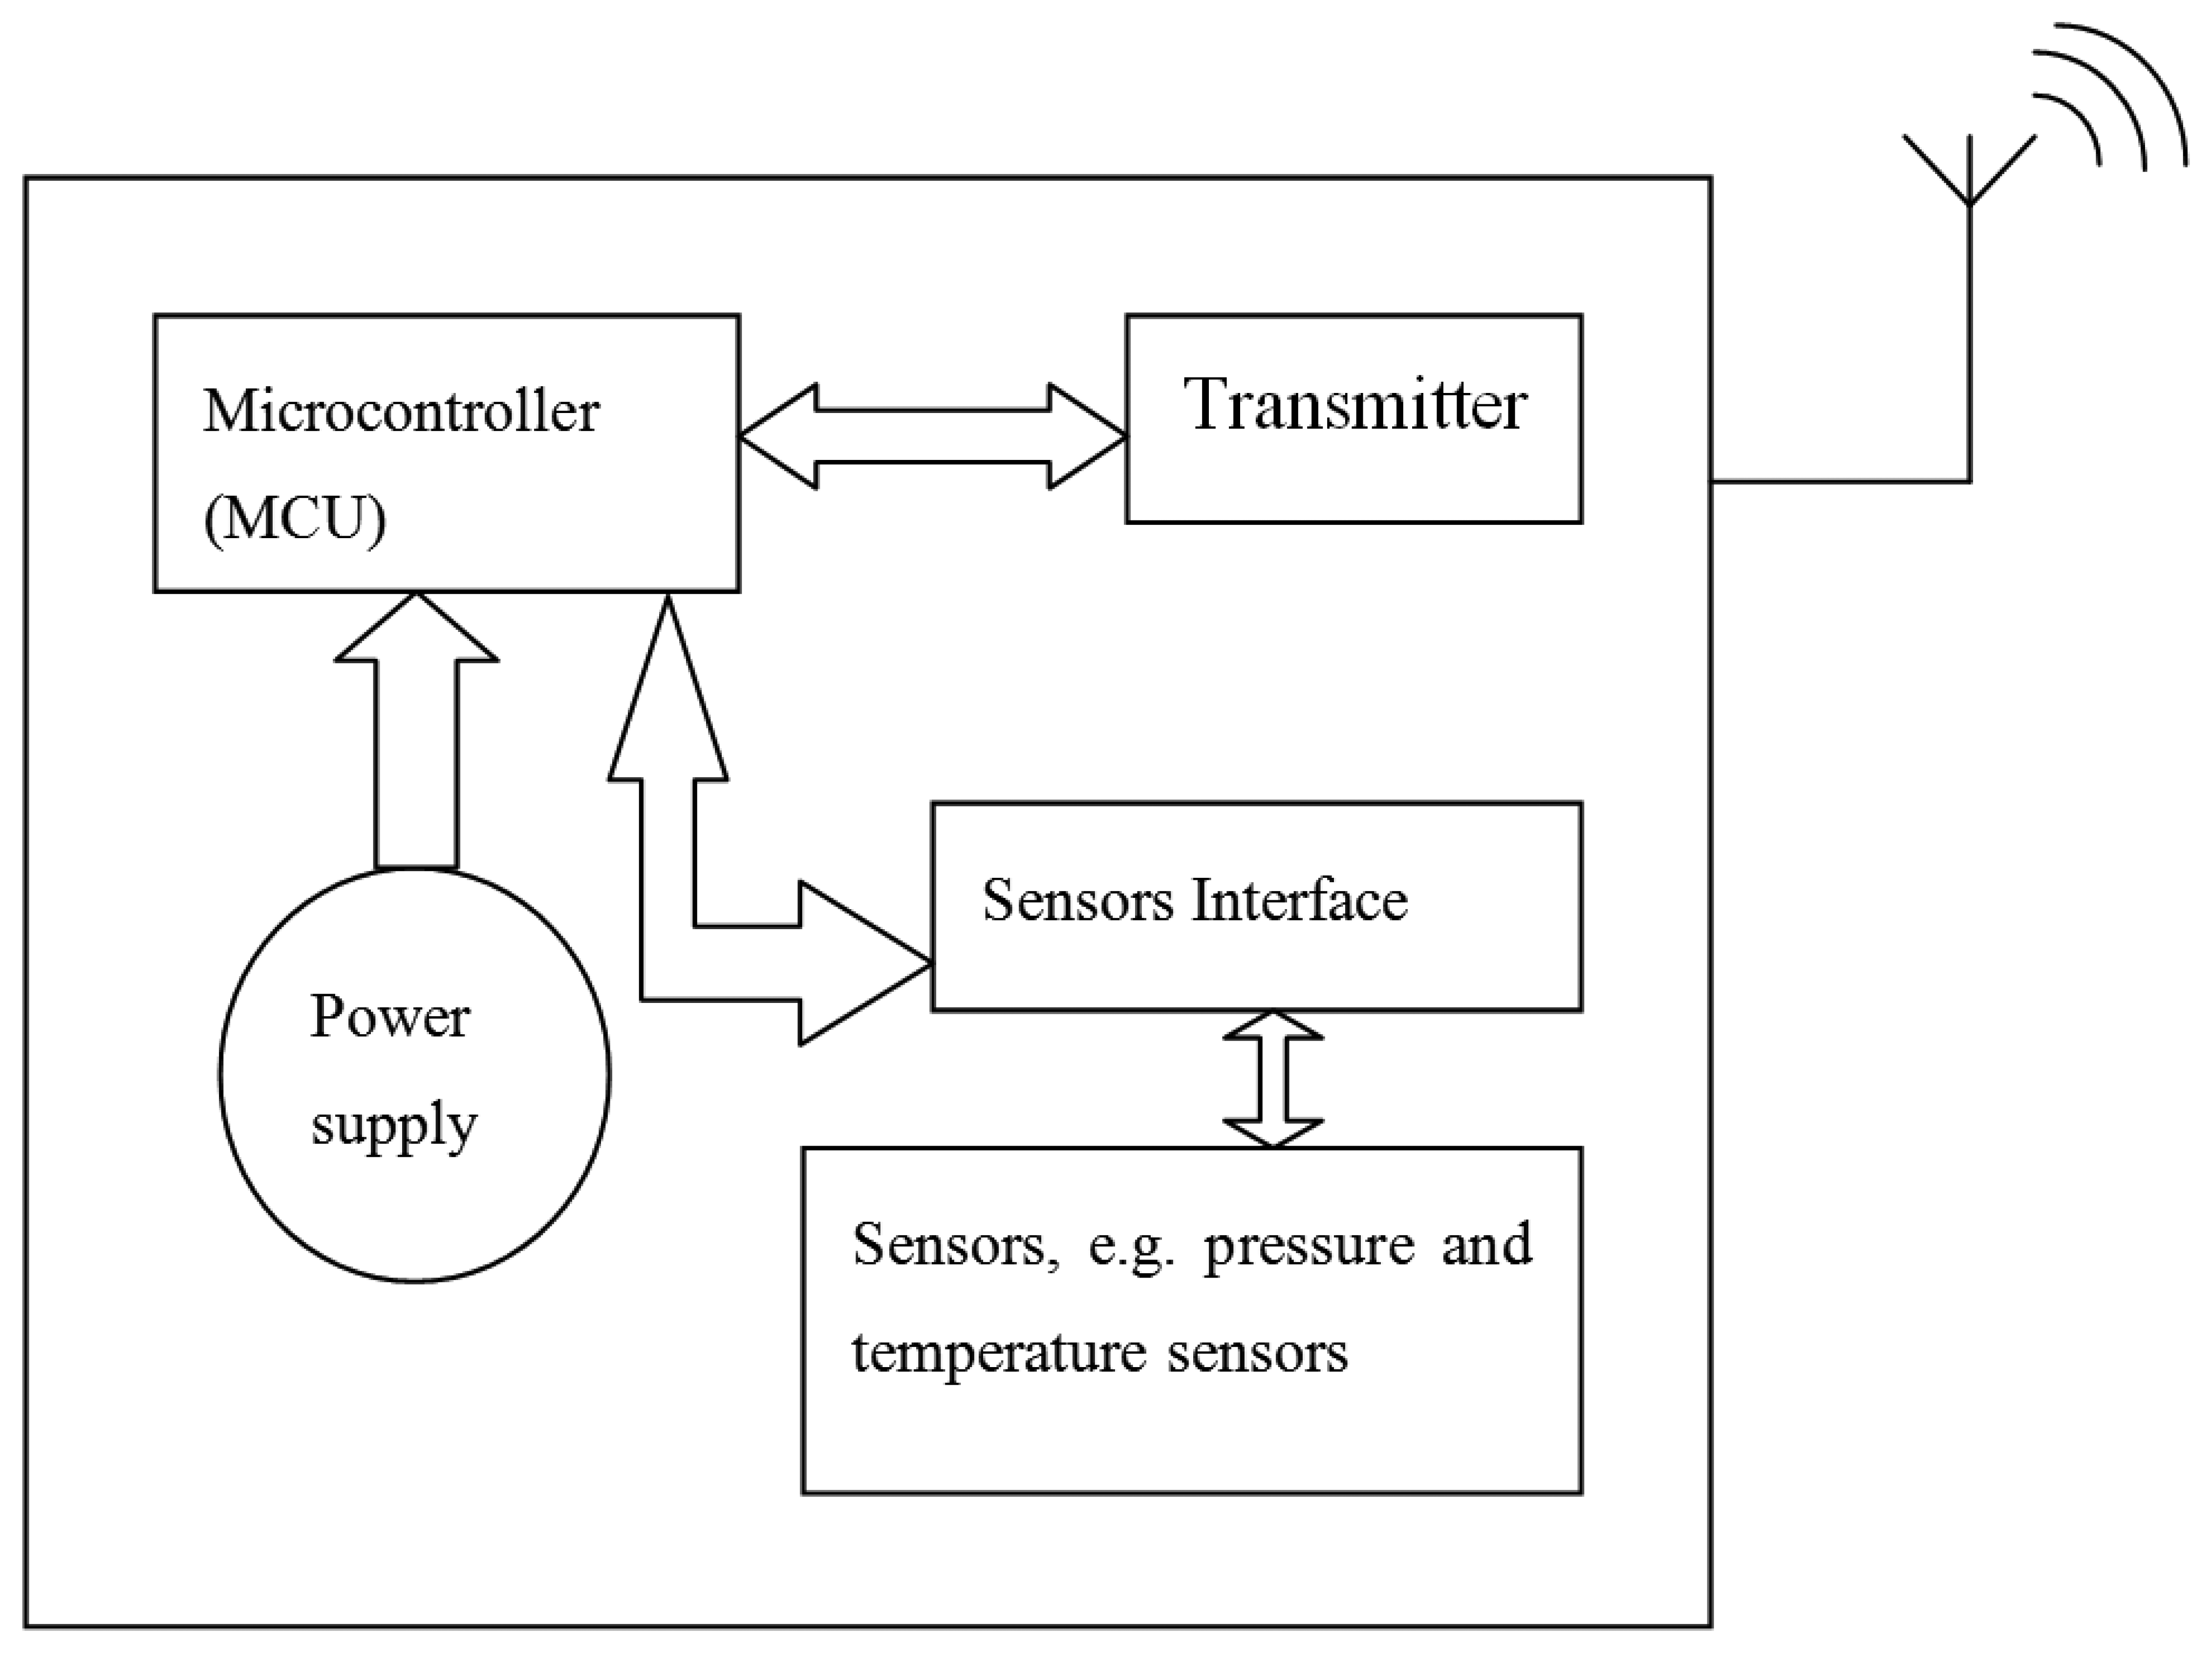 Sensors Free Full Text A Comprehensive Study On Technologies Of Block Diagram The Human Computer Interface System 14 10306f1 1024